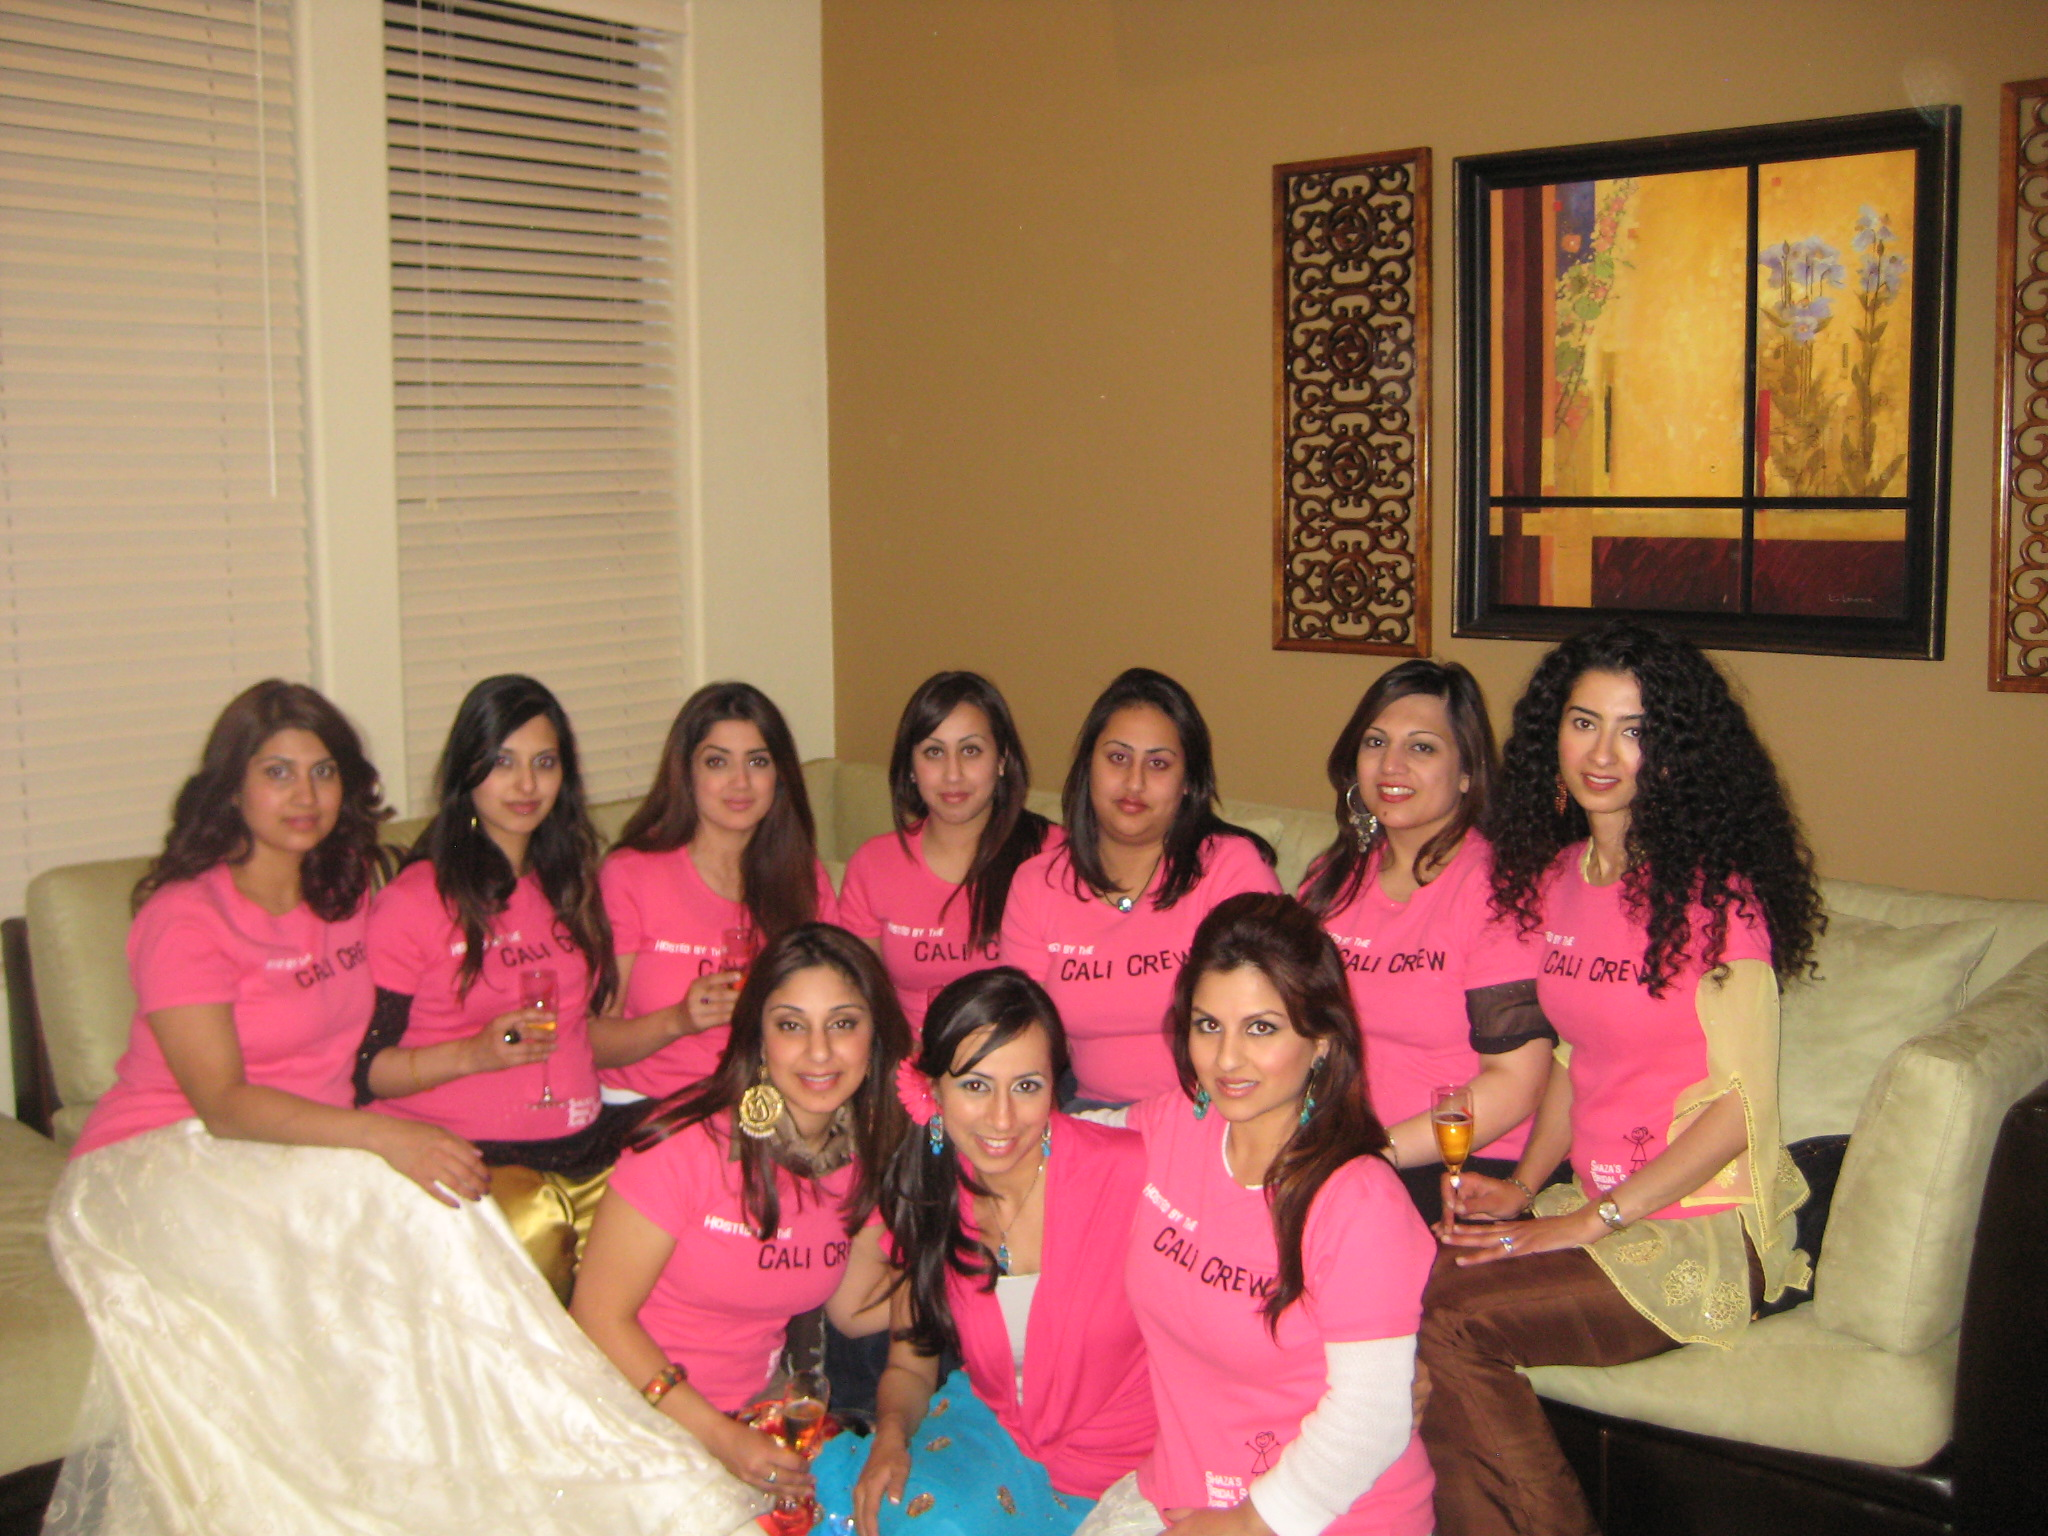 Custom TShirts for Shazas Bridal Shower Hosted By The Cali Crew